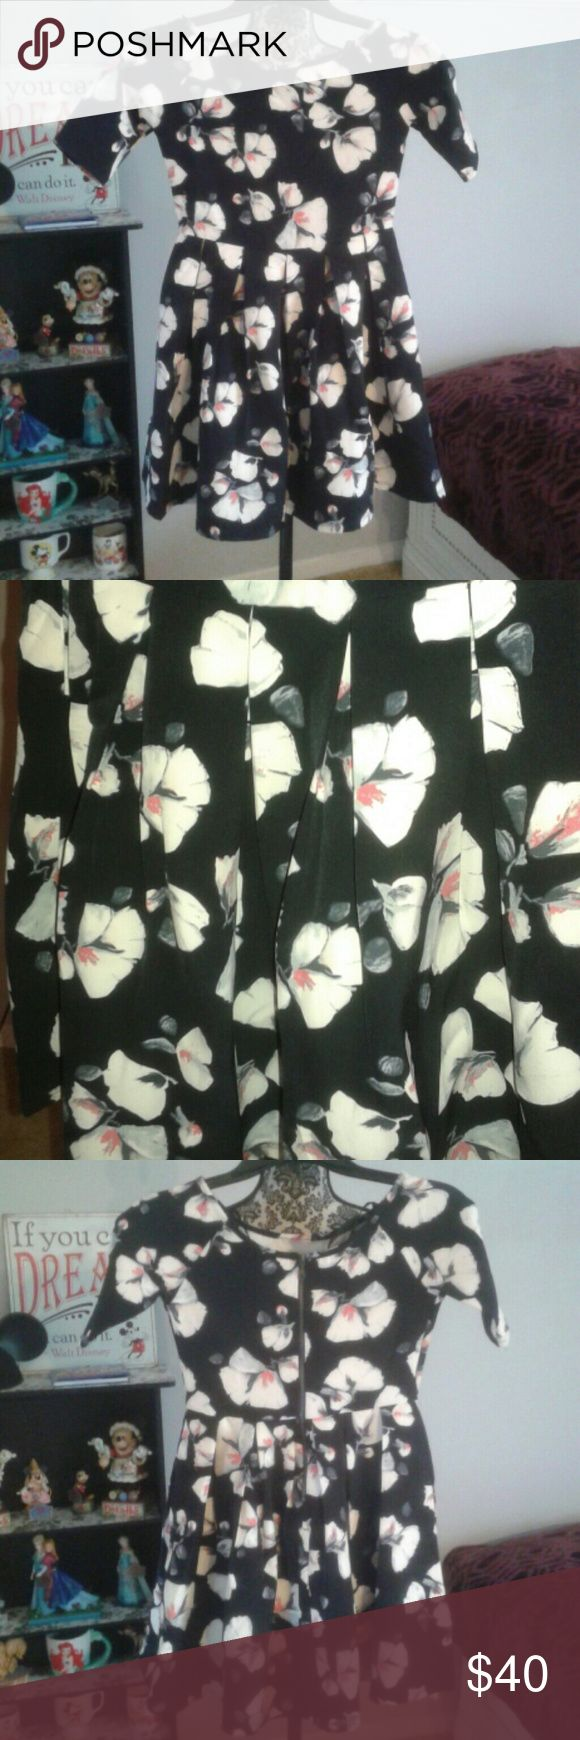 Floral 'Miss Beahve Girls' dress Super cute black floral 'Miss Beahave Girls' dress with pleated bottom. It's about 27 1/2 inches long. It's brand new with tags! Never worn and in excellent condition! I will answer any questions! :) Miss Behave Girls Dresses Mini